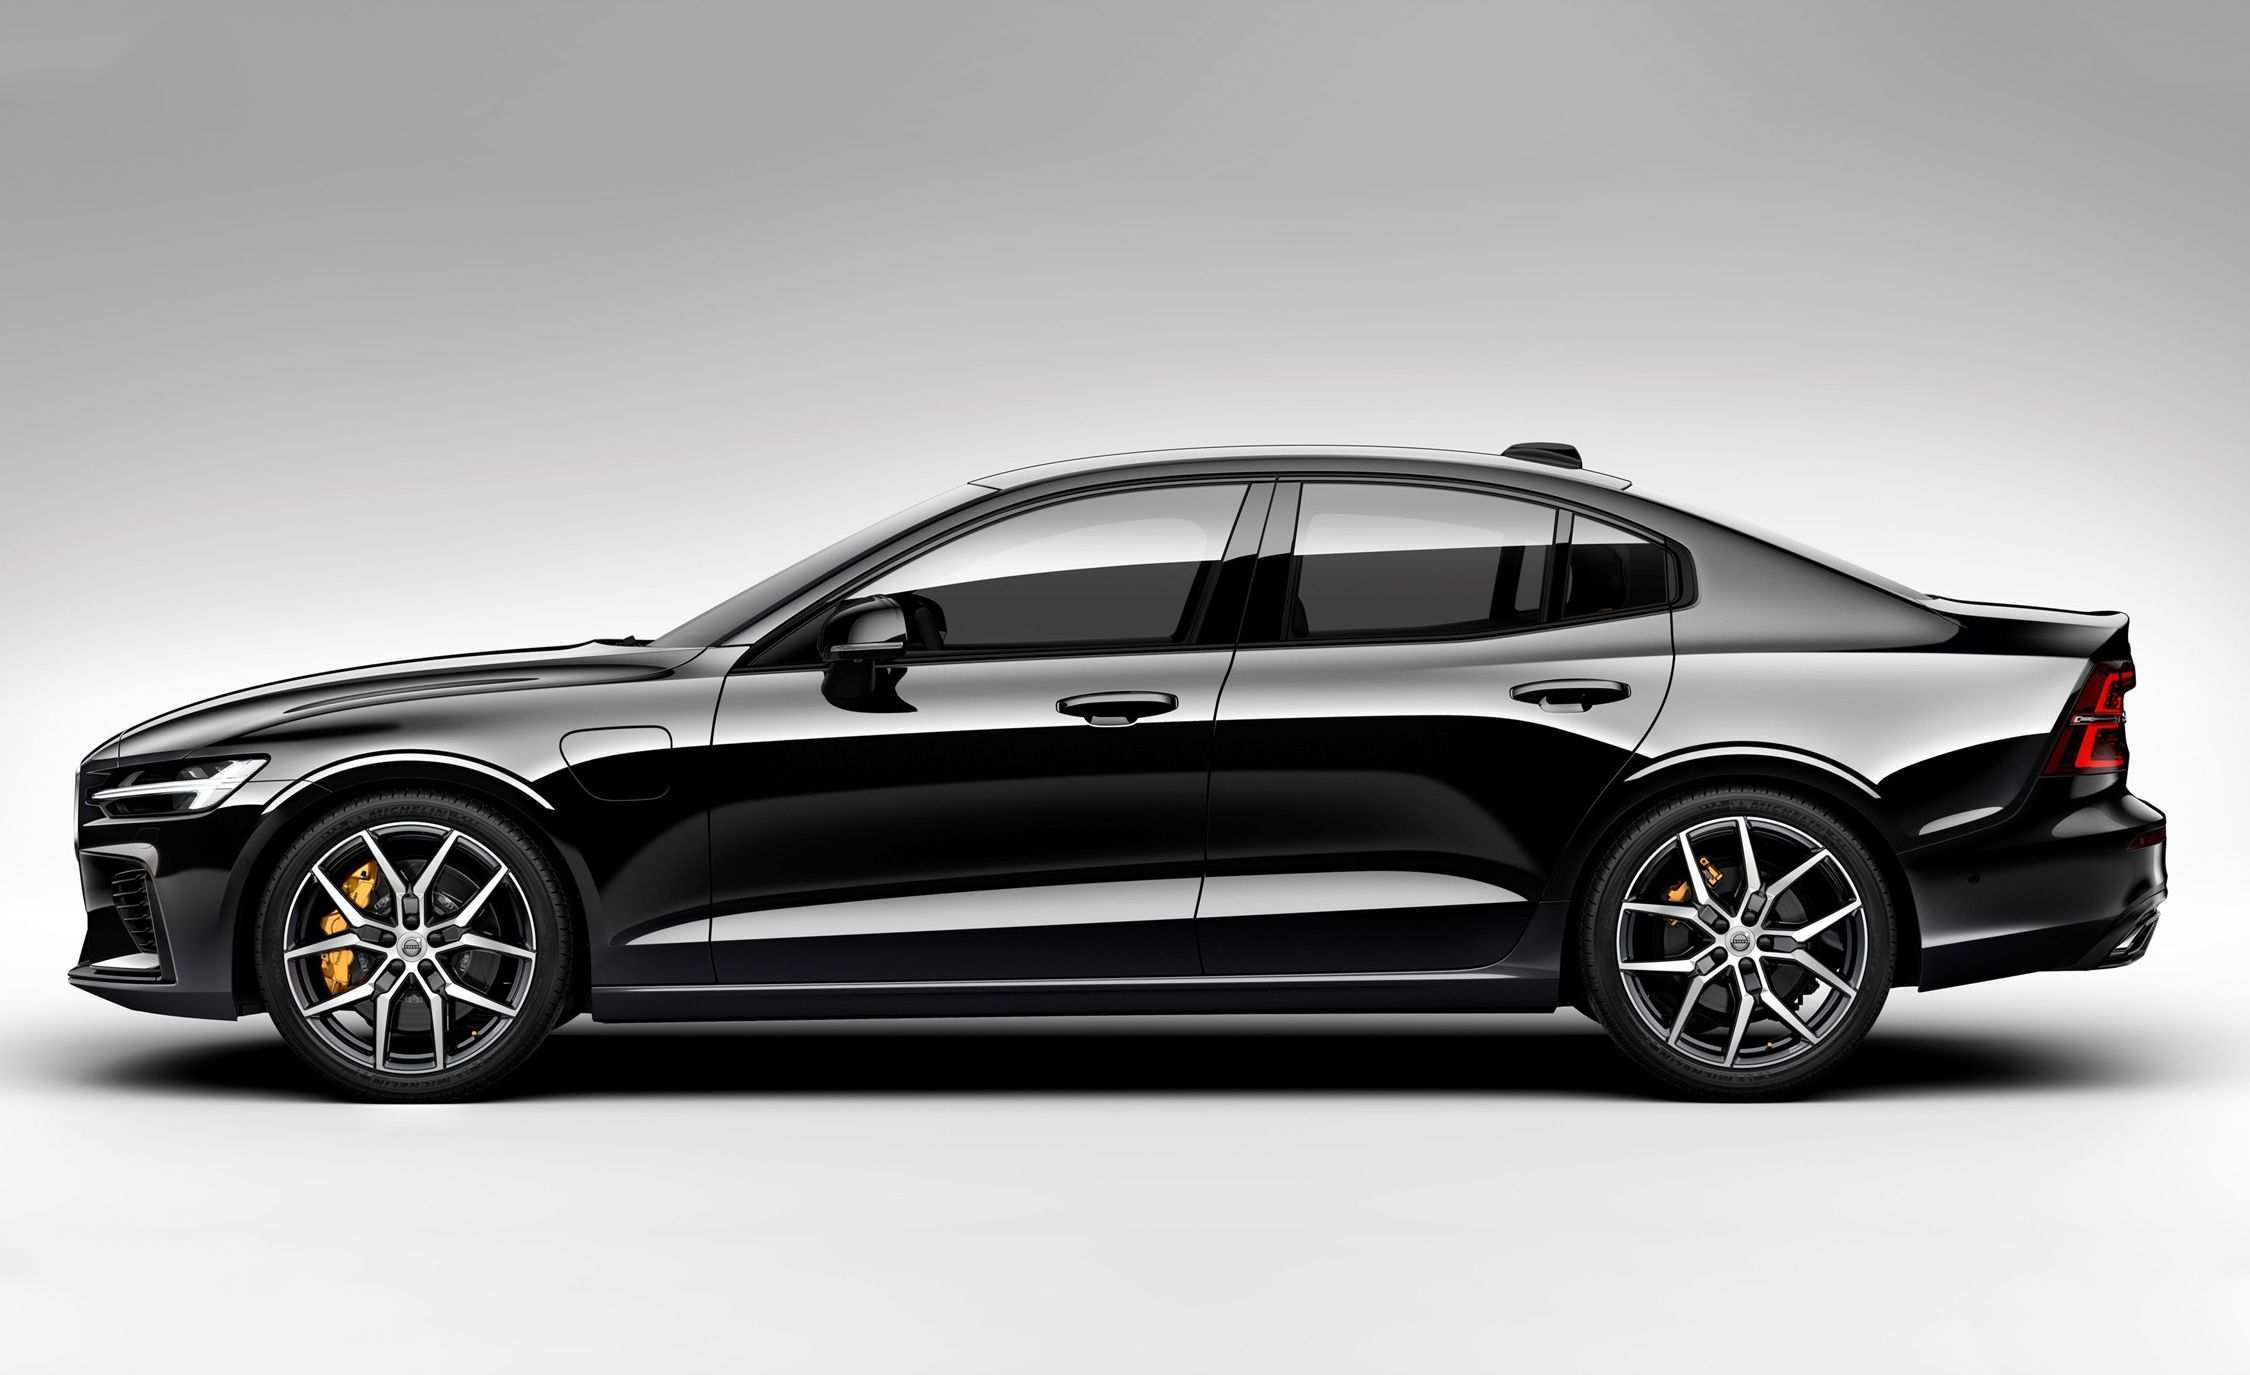 78 Gallery of 2019 Volvo Polestar Spesification for 2019 Volvo Polestar